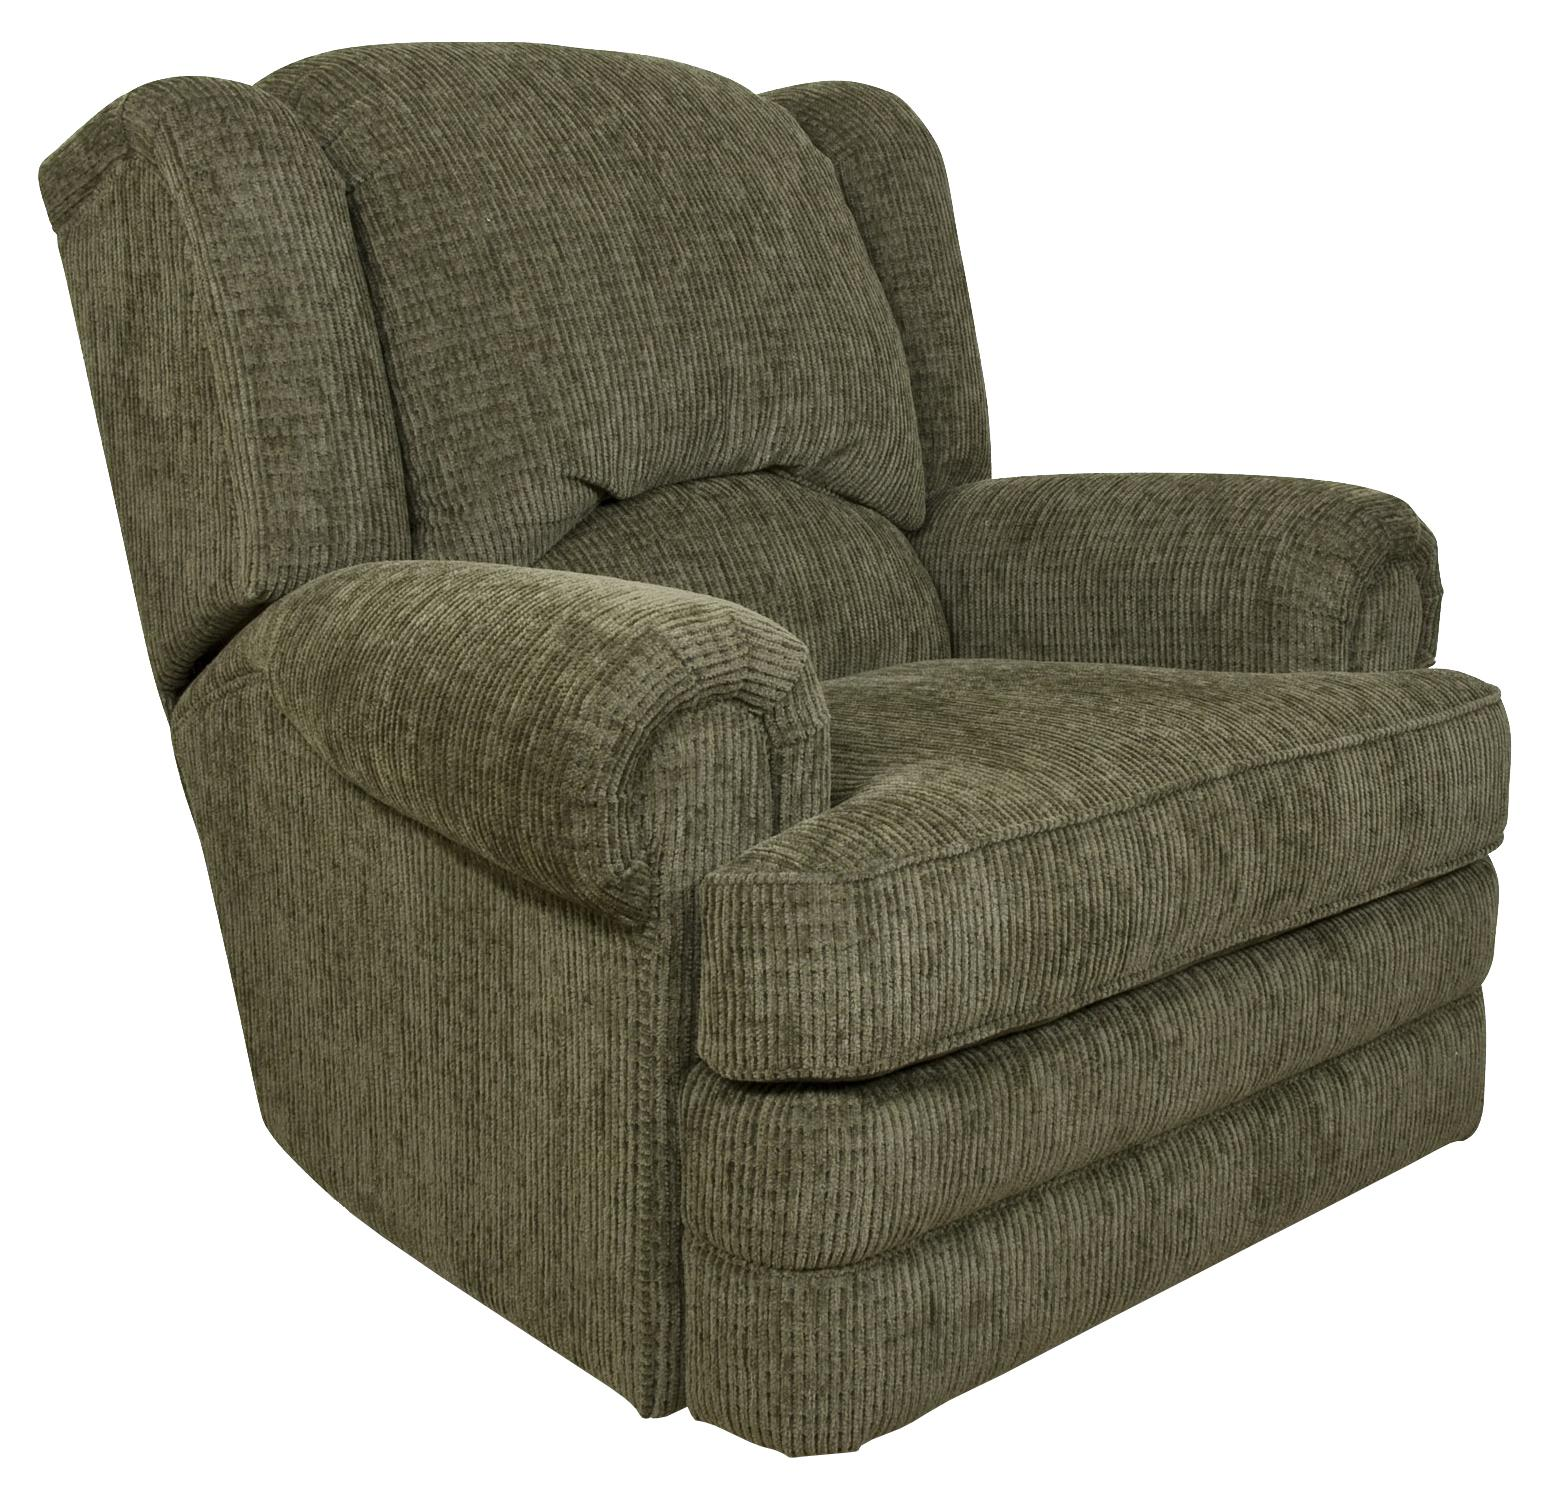 England Drake Swivel Gliding Recliner - Item Number: 2930-70